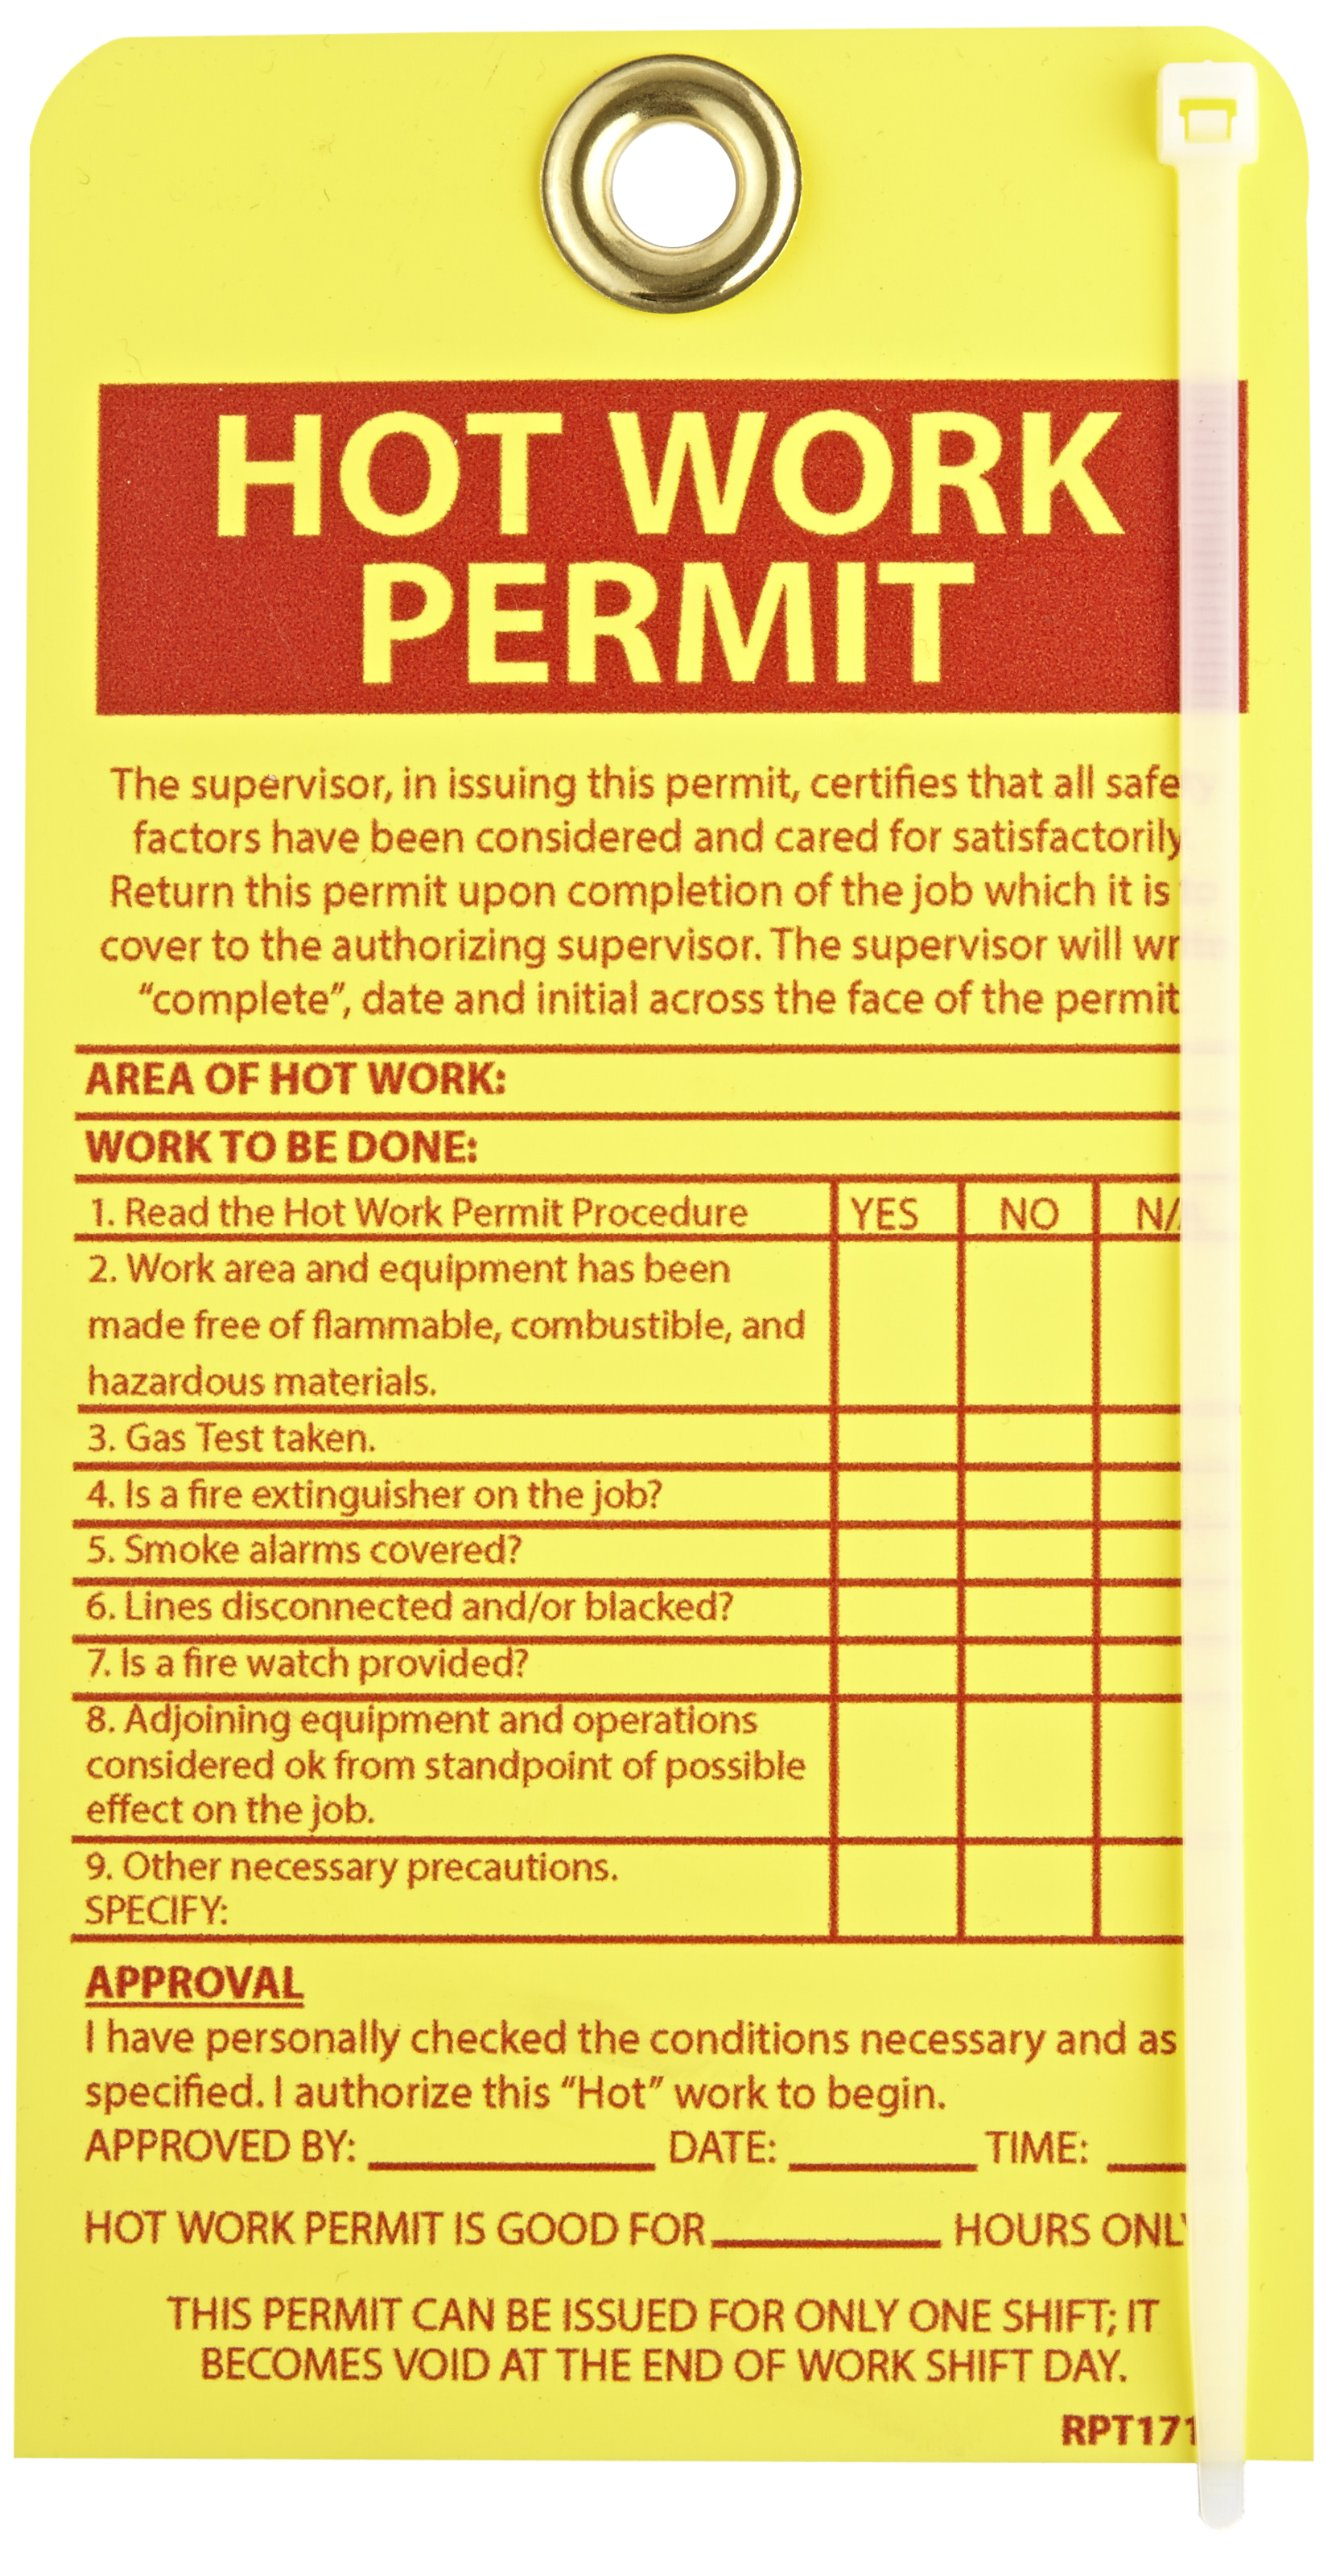 NMC RPT171G''HOT WORK PERMIT'' Accident Prevention Tag with Brass Grommet, Unrippable Vinyl, 4'' Length, 7-1/2'' Height, Red on Yellow (Pack of 10)